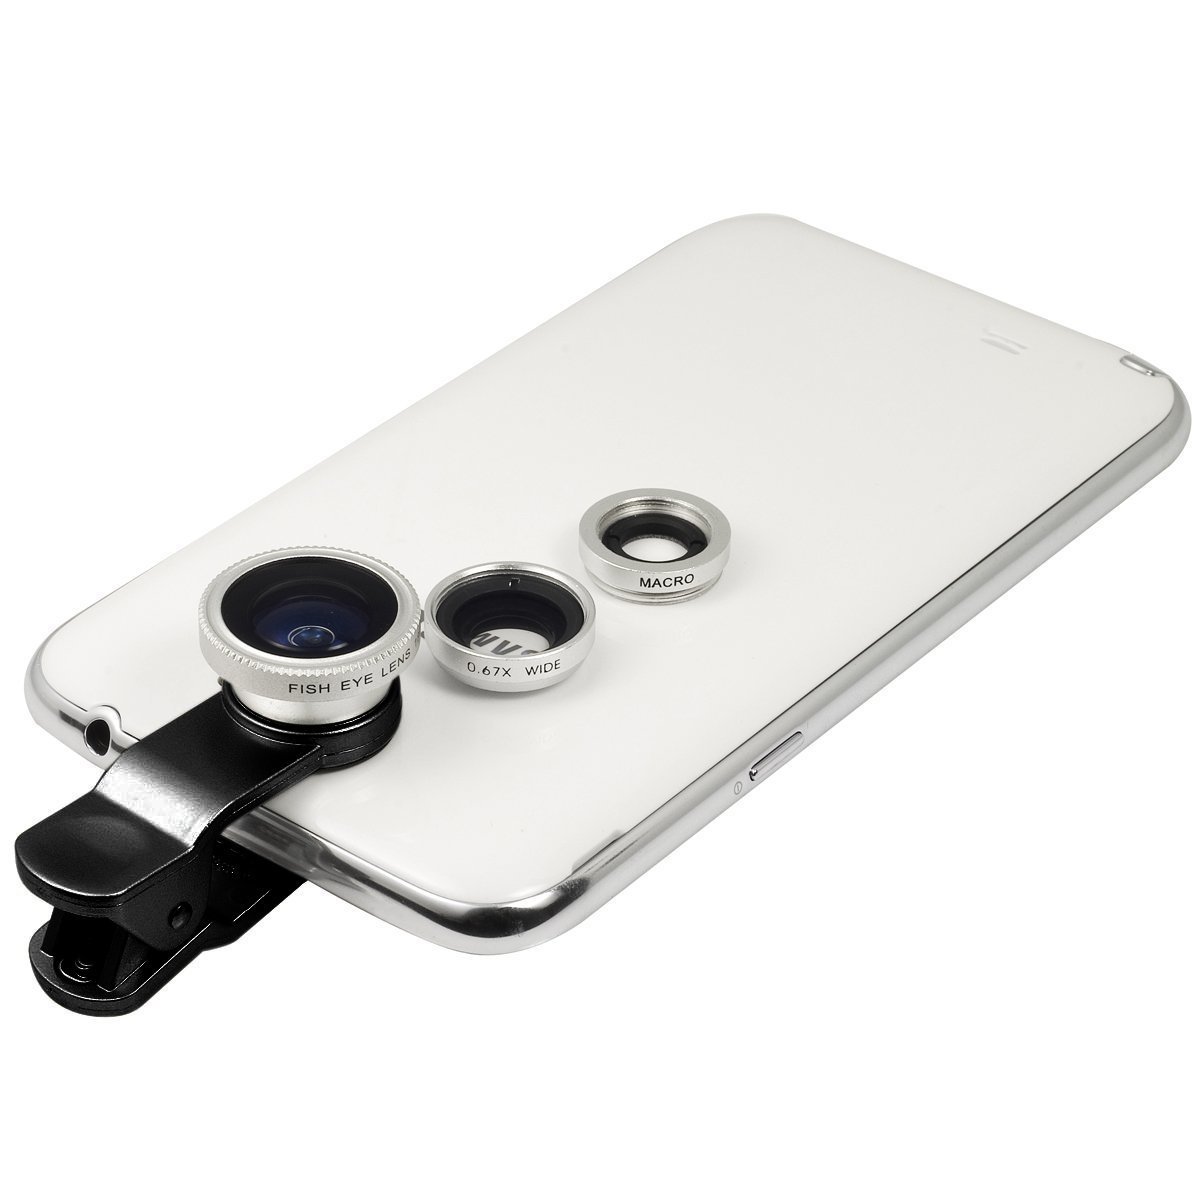 Silver Universal Clip-on 180 degree 3 in 1 Fisheye+Wide Angle+Macro Camera Lens Kit for iPhone 5 5S 4 4S 6 Samsung Galaxy S5/S4/S3 Note 4/3/2 HTC Blackberry Bold Touch, Sony Xperia, Motorola Droid